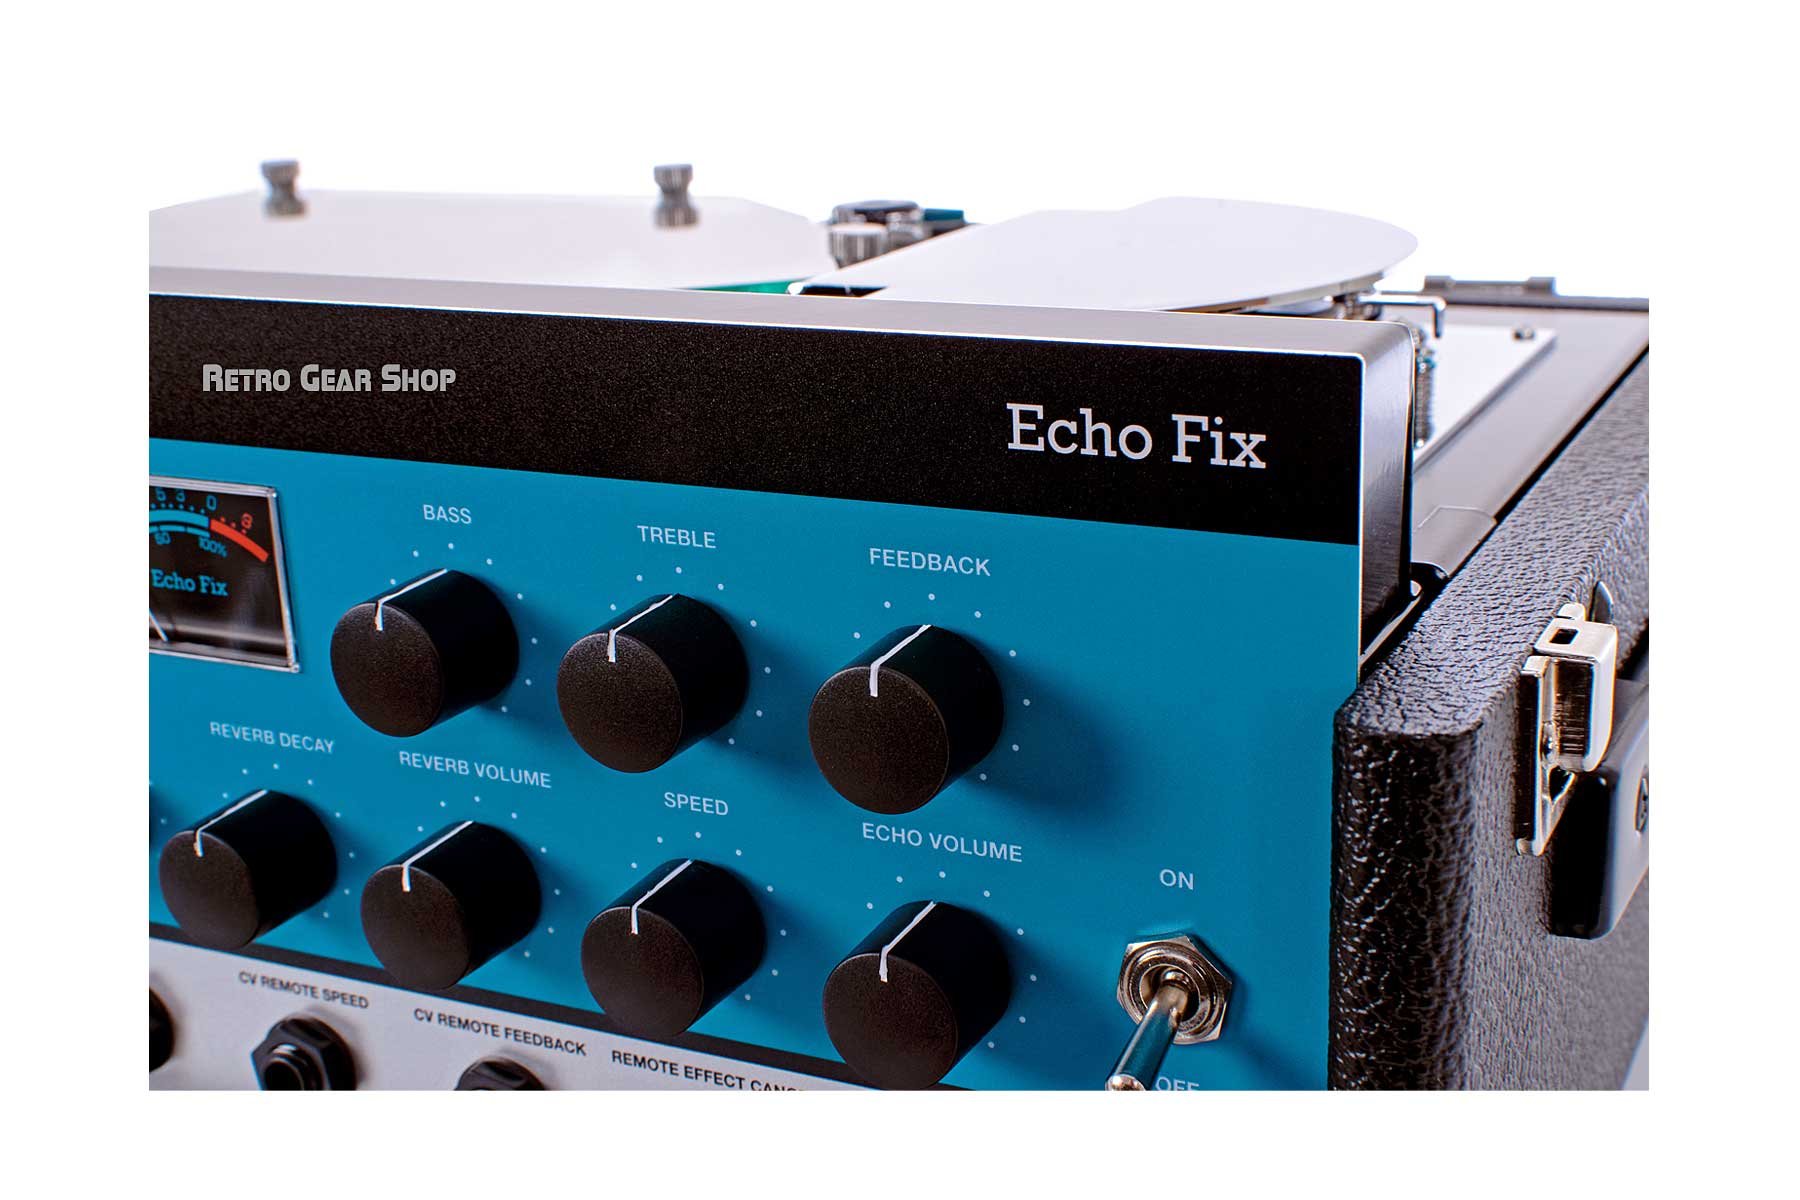 Echo Fix EF-X2 Tape Delay Echo Spring DSP Reverb Replica RE-201 Reissue